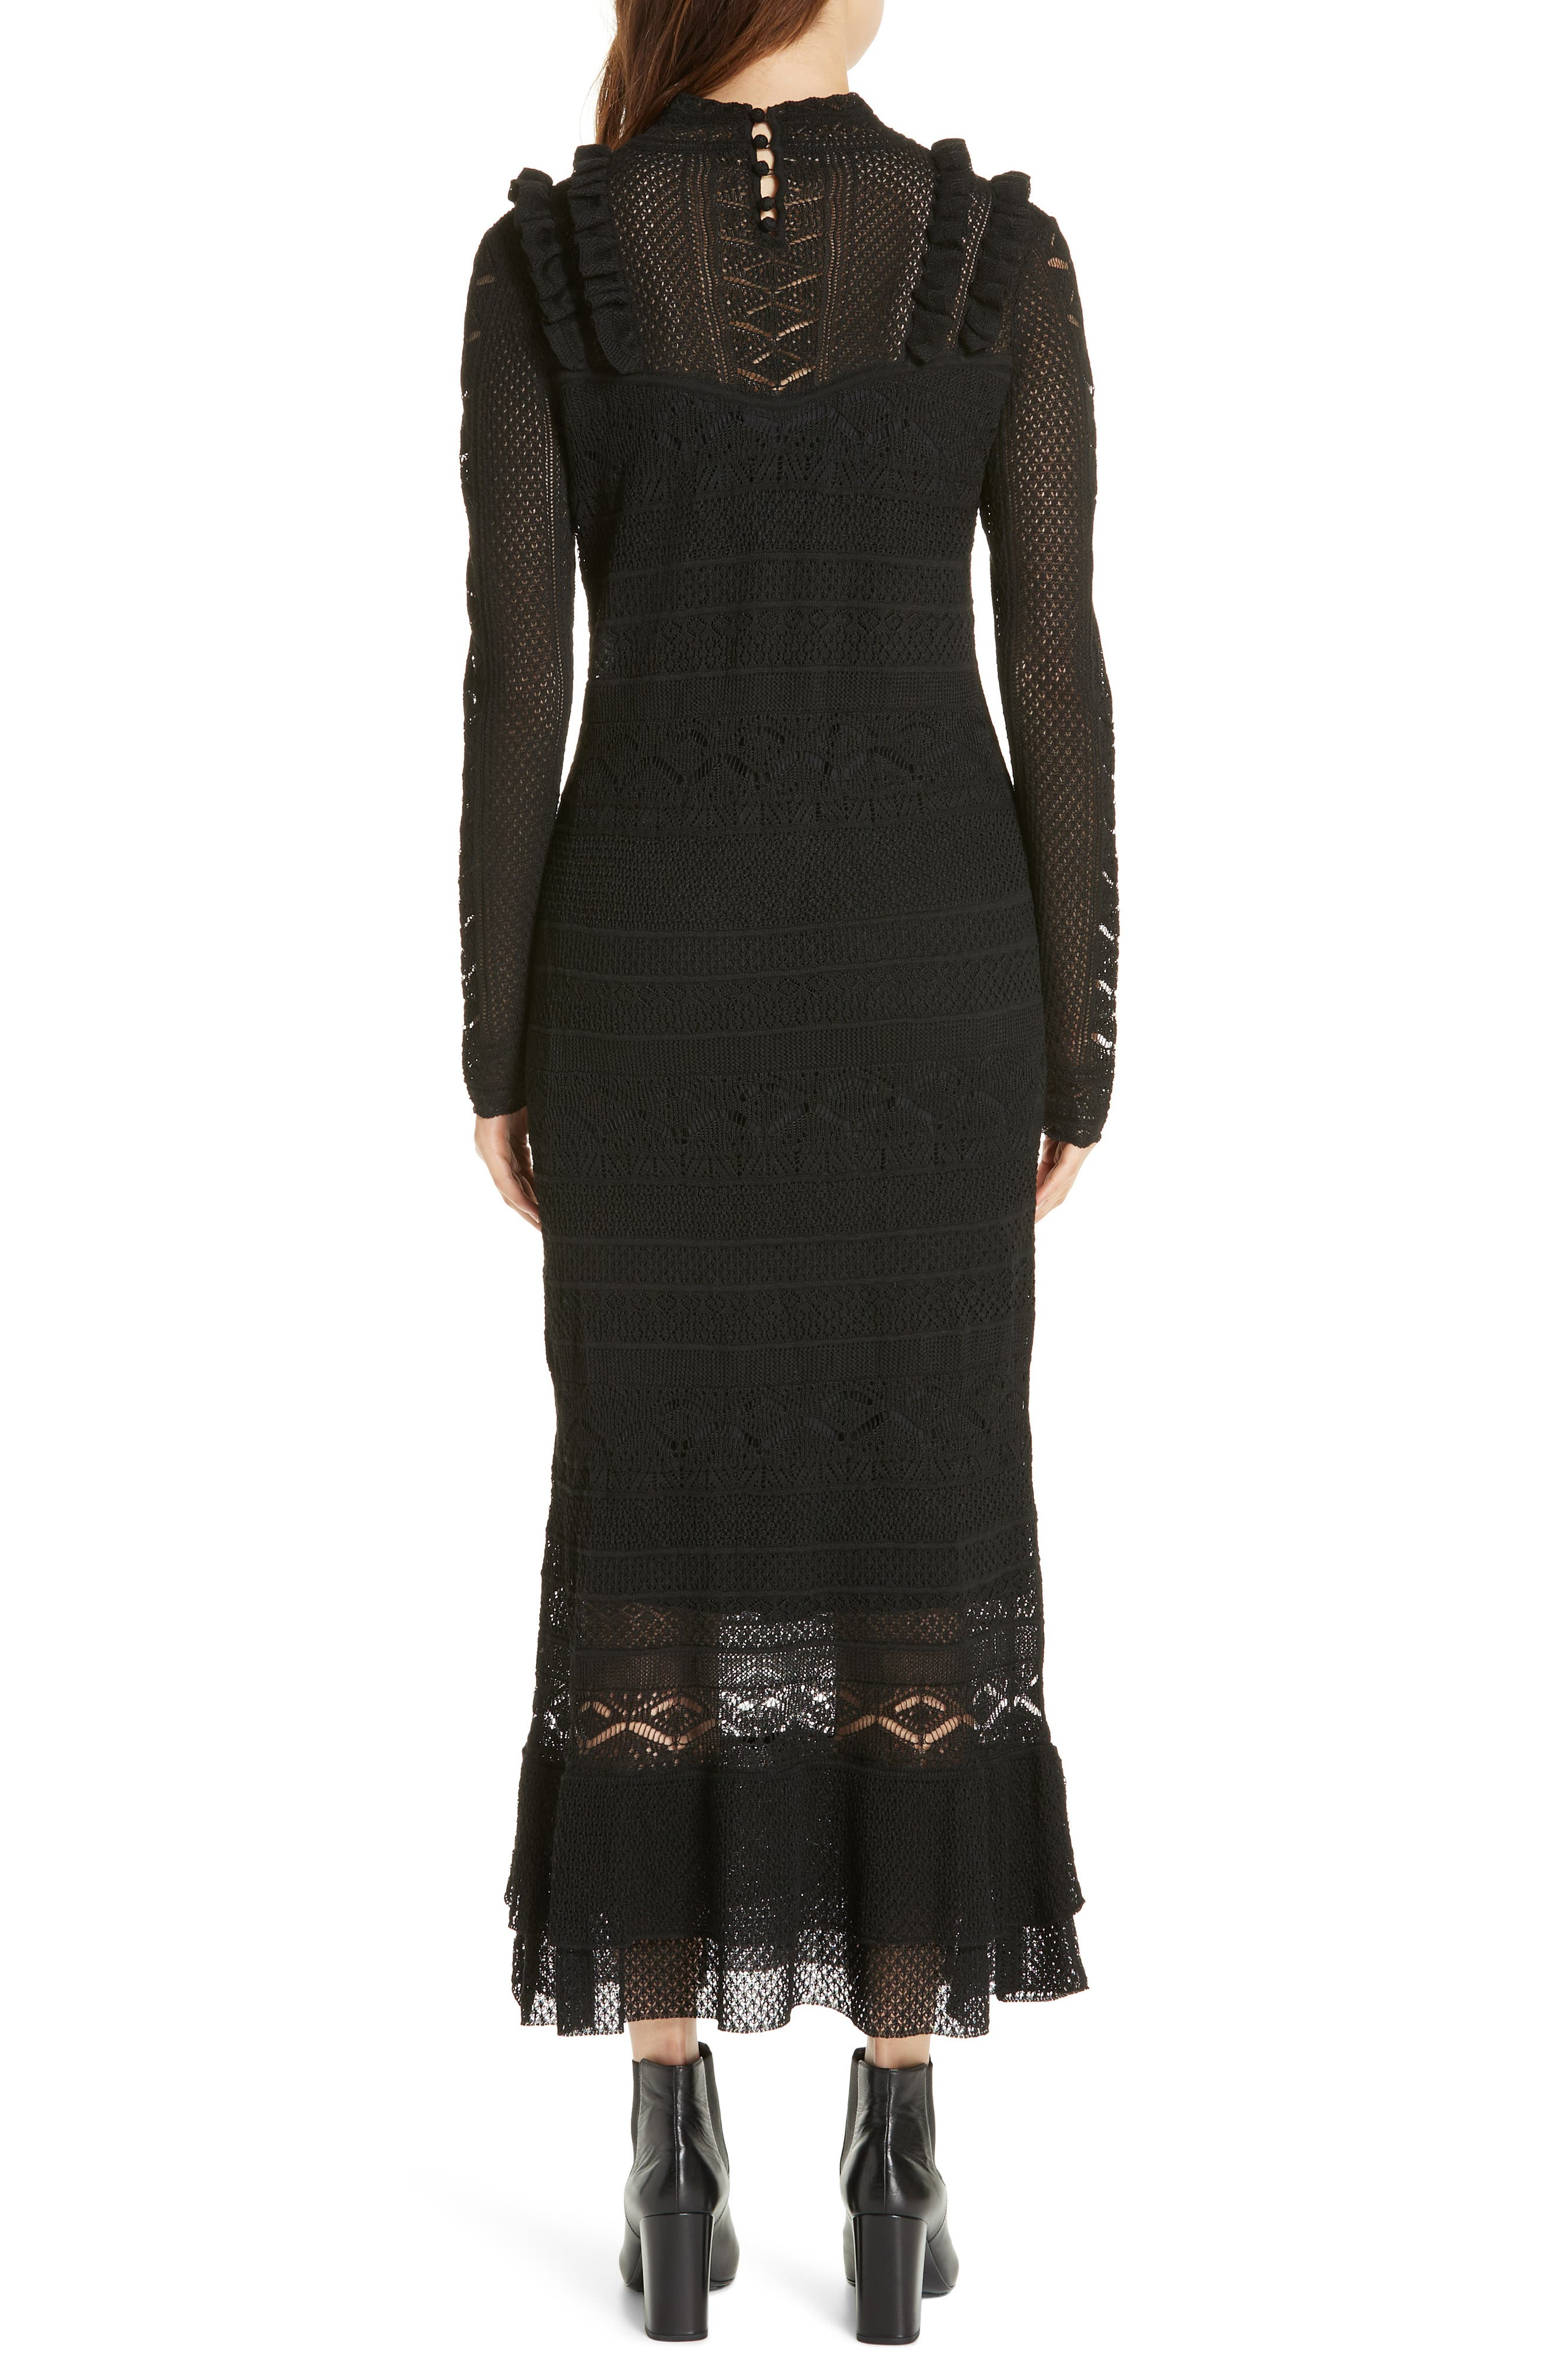 Pointelle Lace Midi Dress,                             Alternate thumbnail 2, color,                             001